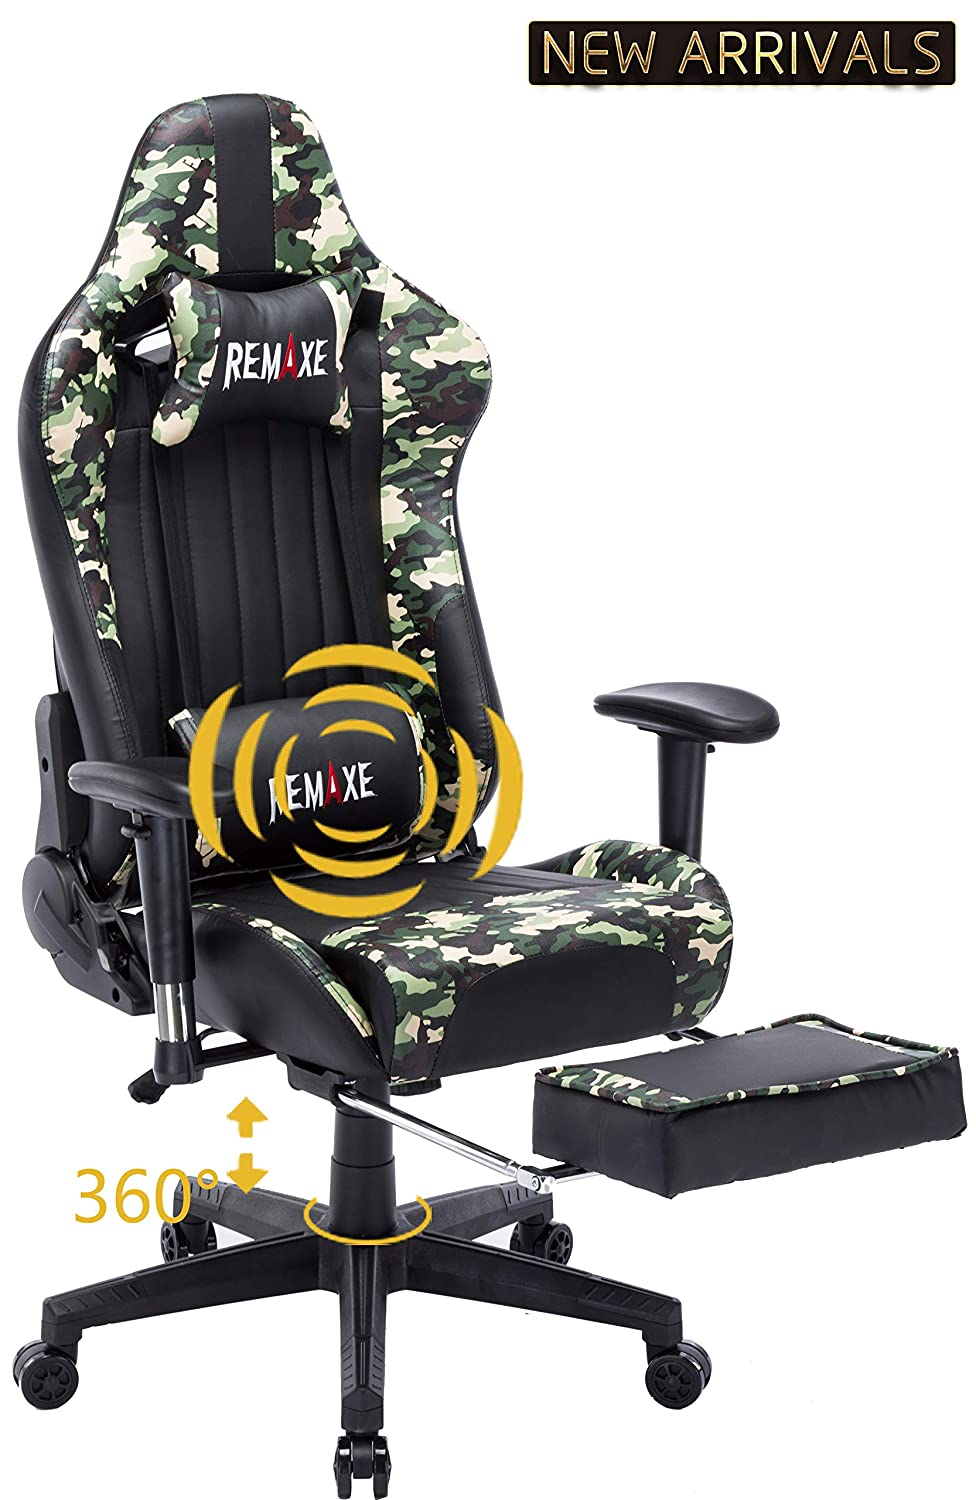 Large Size Computer Gaming Chair Ergomonic Racing Chair with Retractable Footrest,Execultive PU Leather Headrest Lumbar Massager Cushion Ergonomic Swivel PC Chair for Home (Black) Remaxe